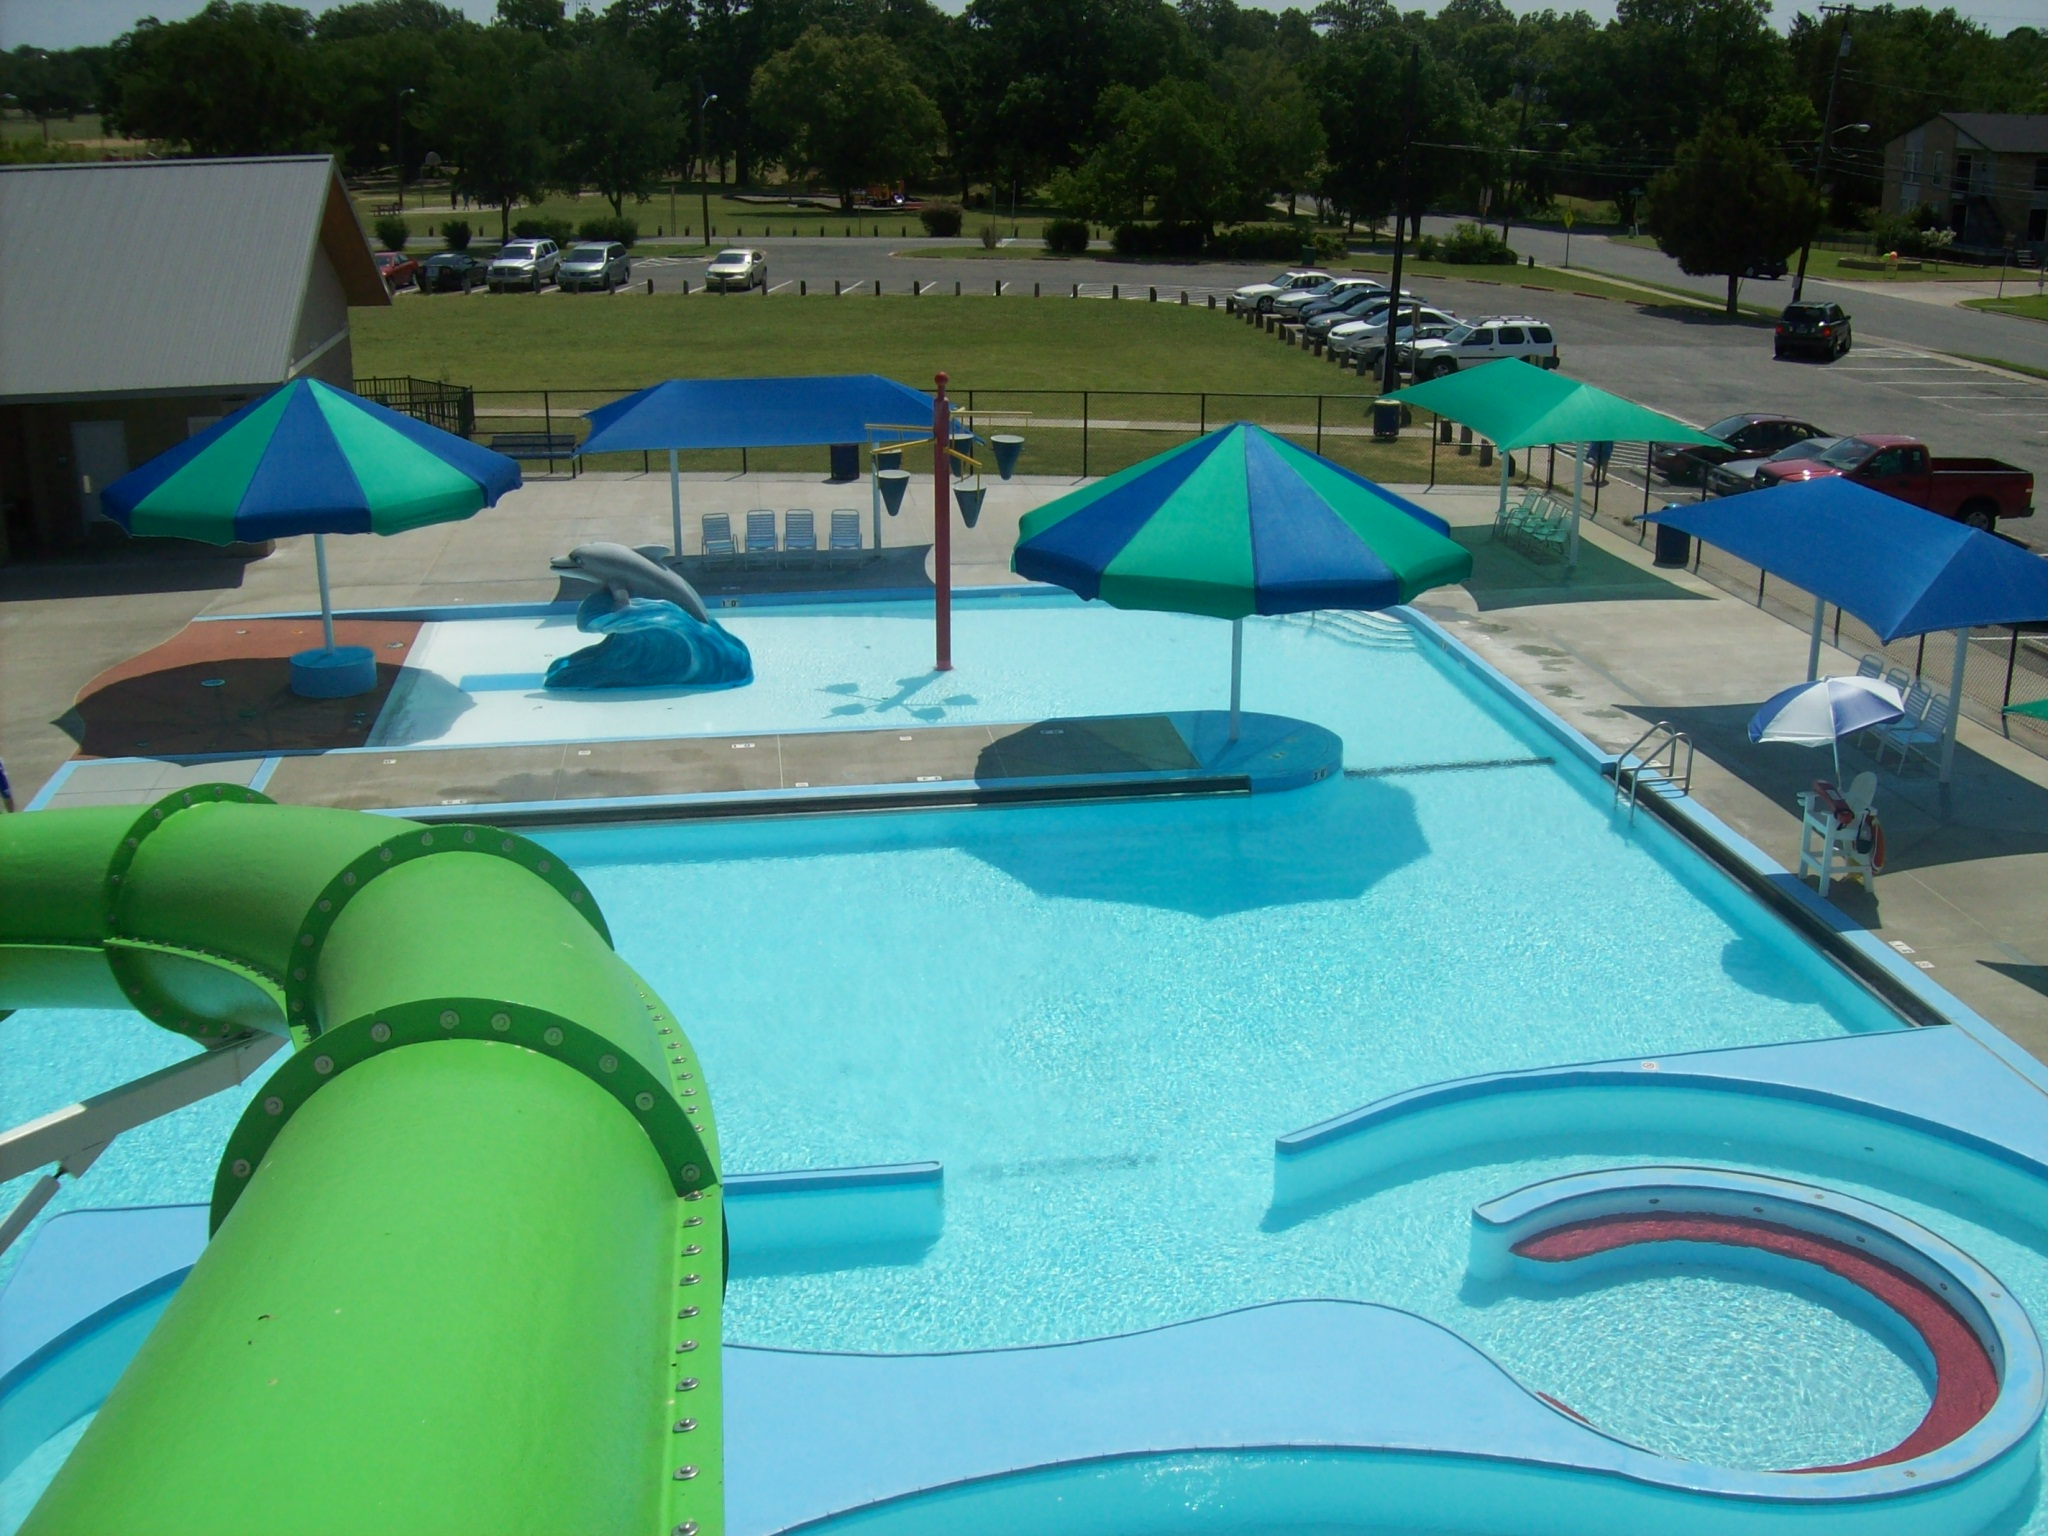 Overhead view of waterslides, pools, and umbrellas.